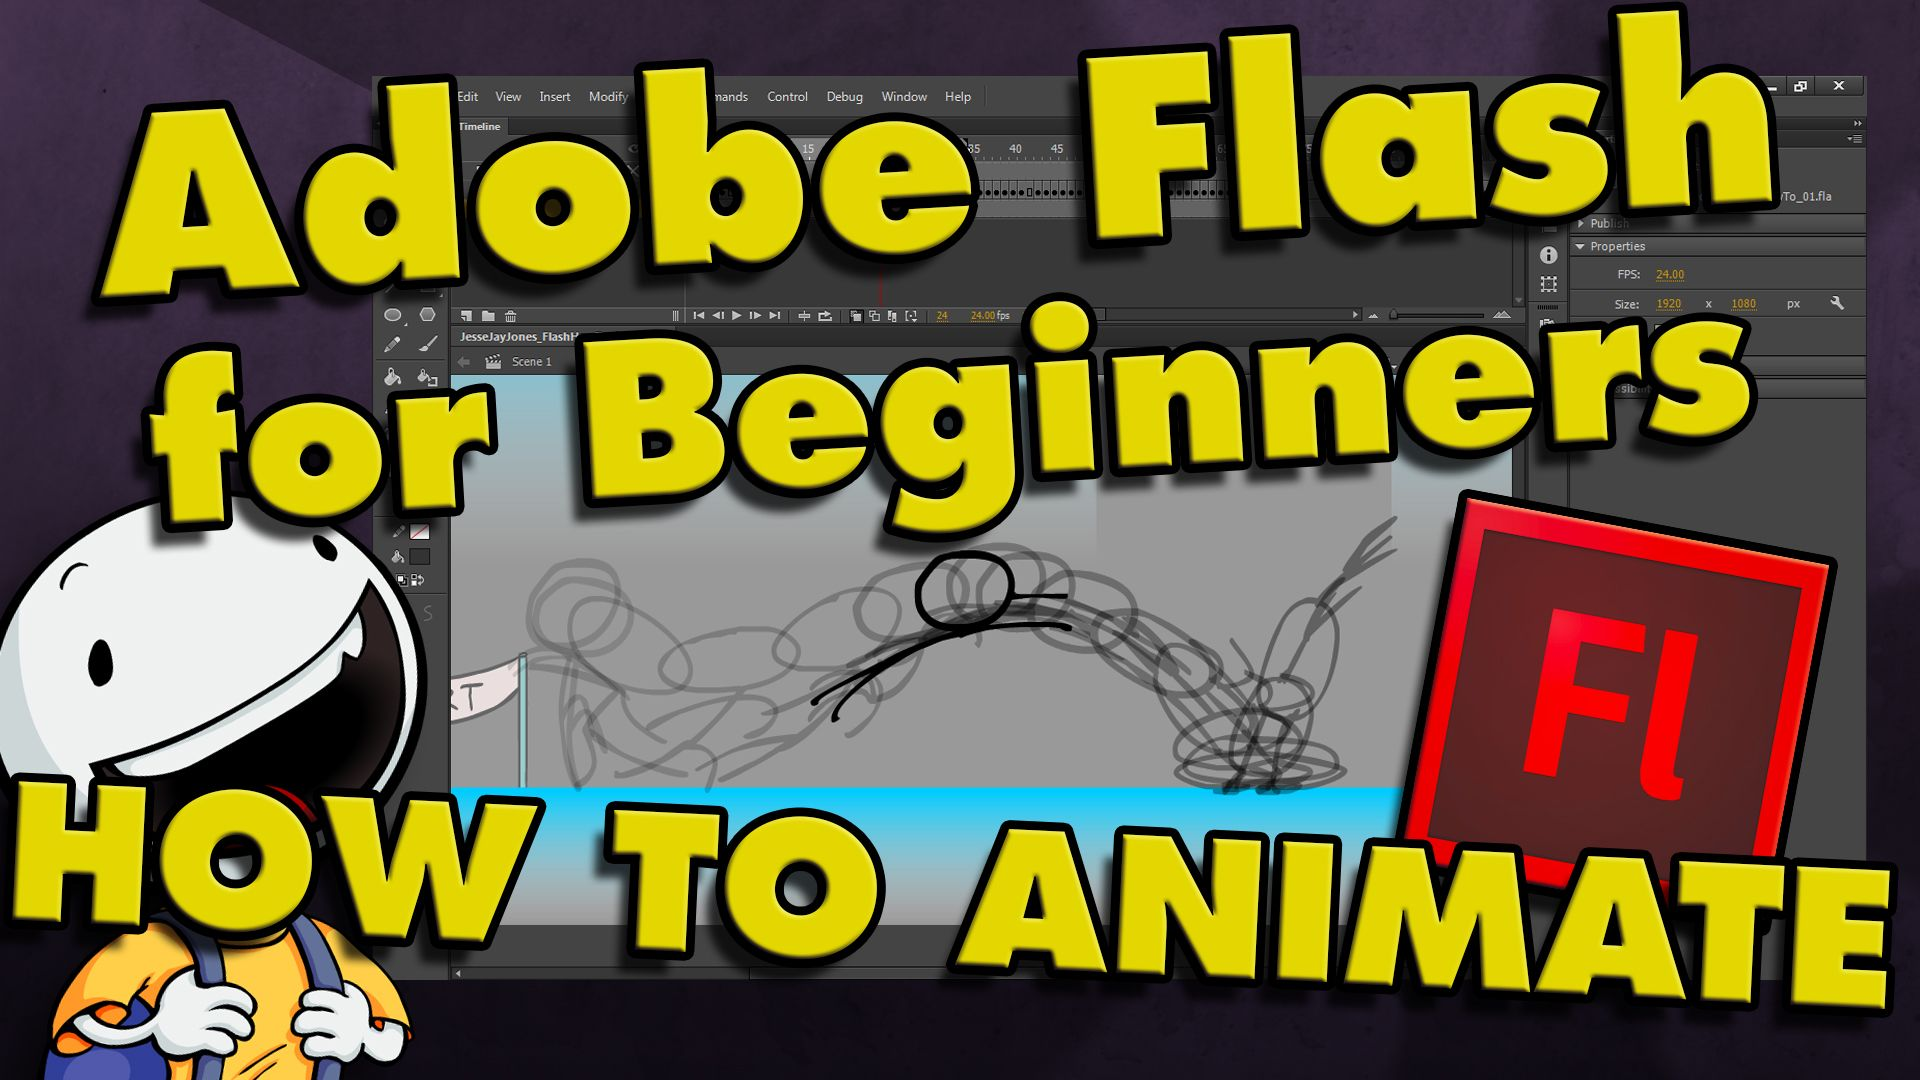 How to animate your own cartoons in adobe flash cc cs6 for how to animate your own cartoons in adobe flash cc cs6 for beginners baditri Choice Image